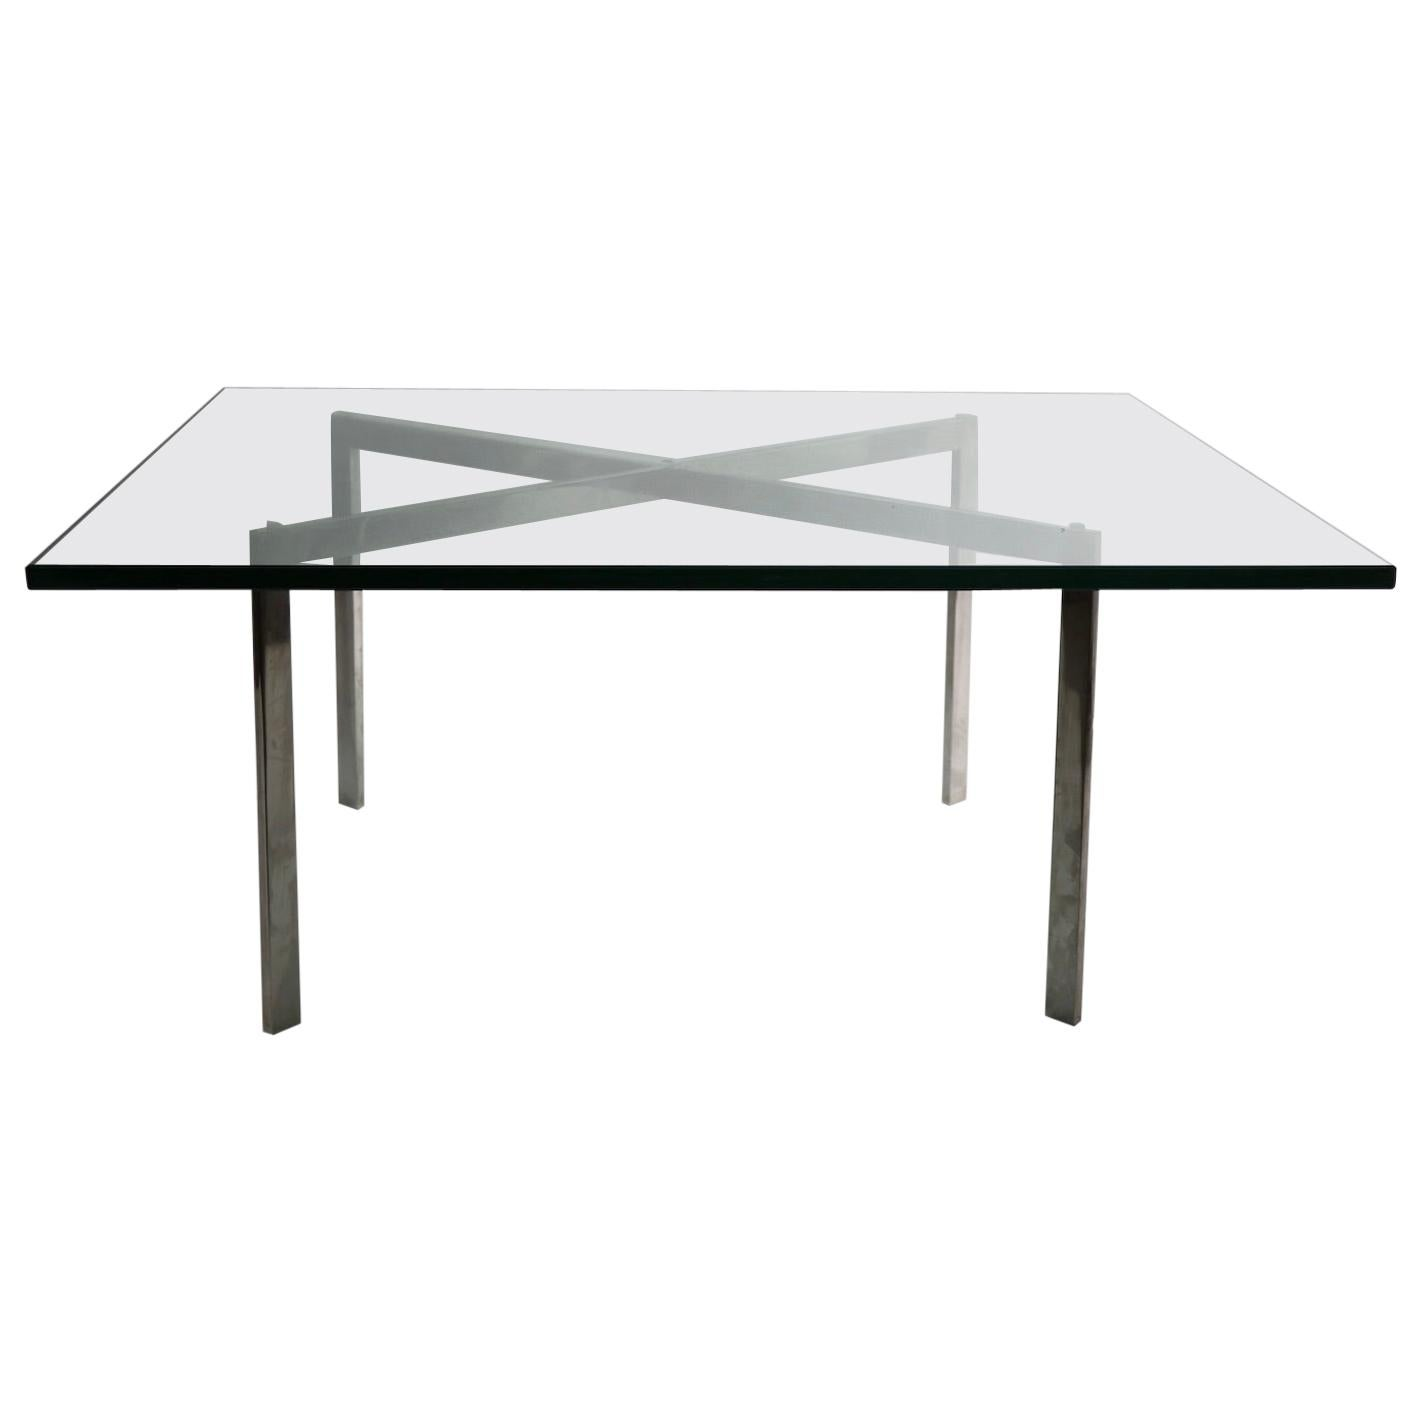 Barcelona Table with Stainless Steel Frame - 252